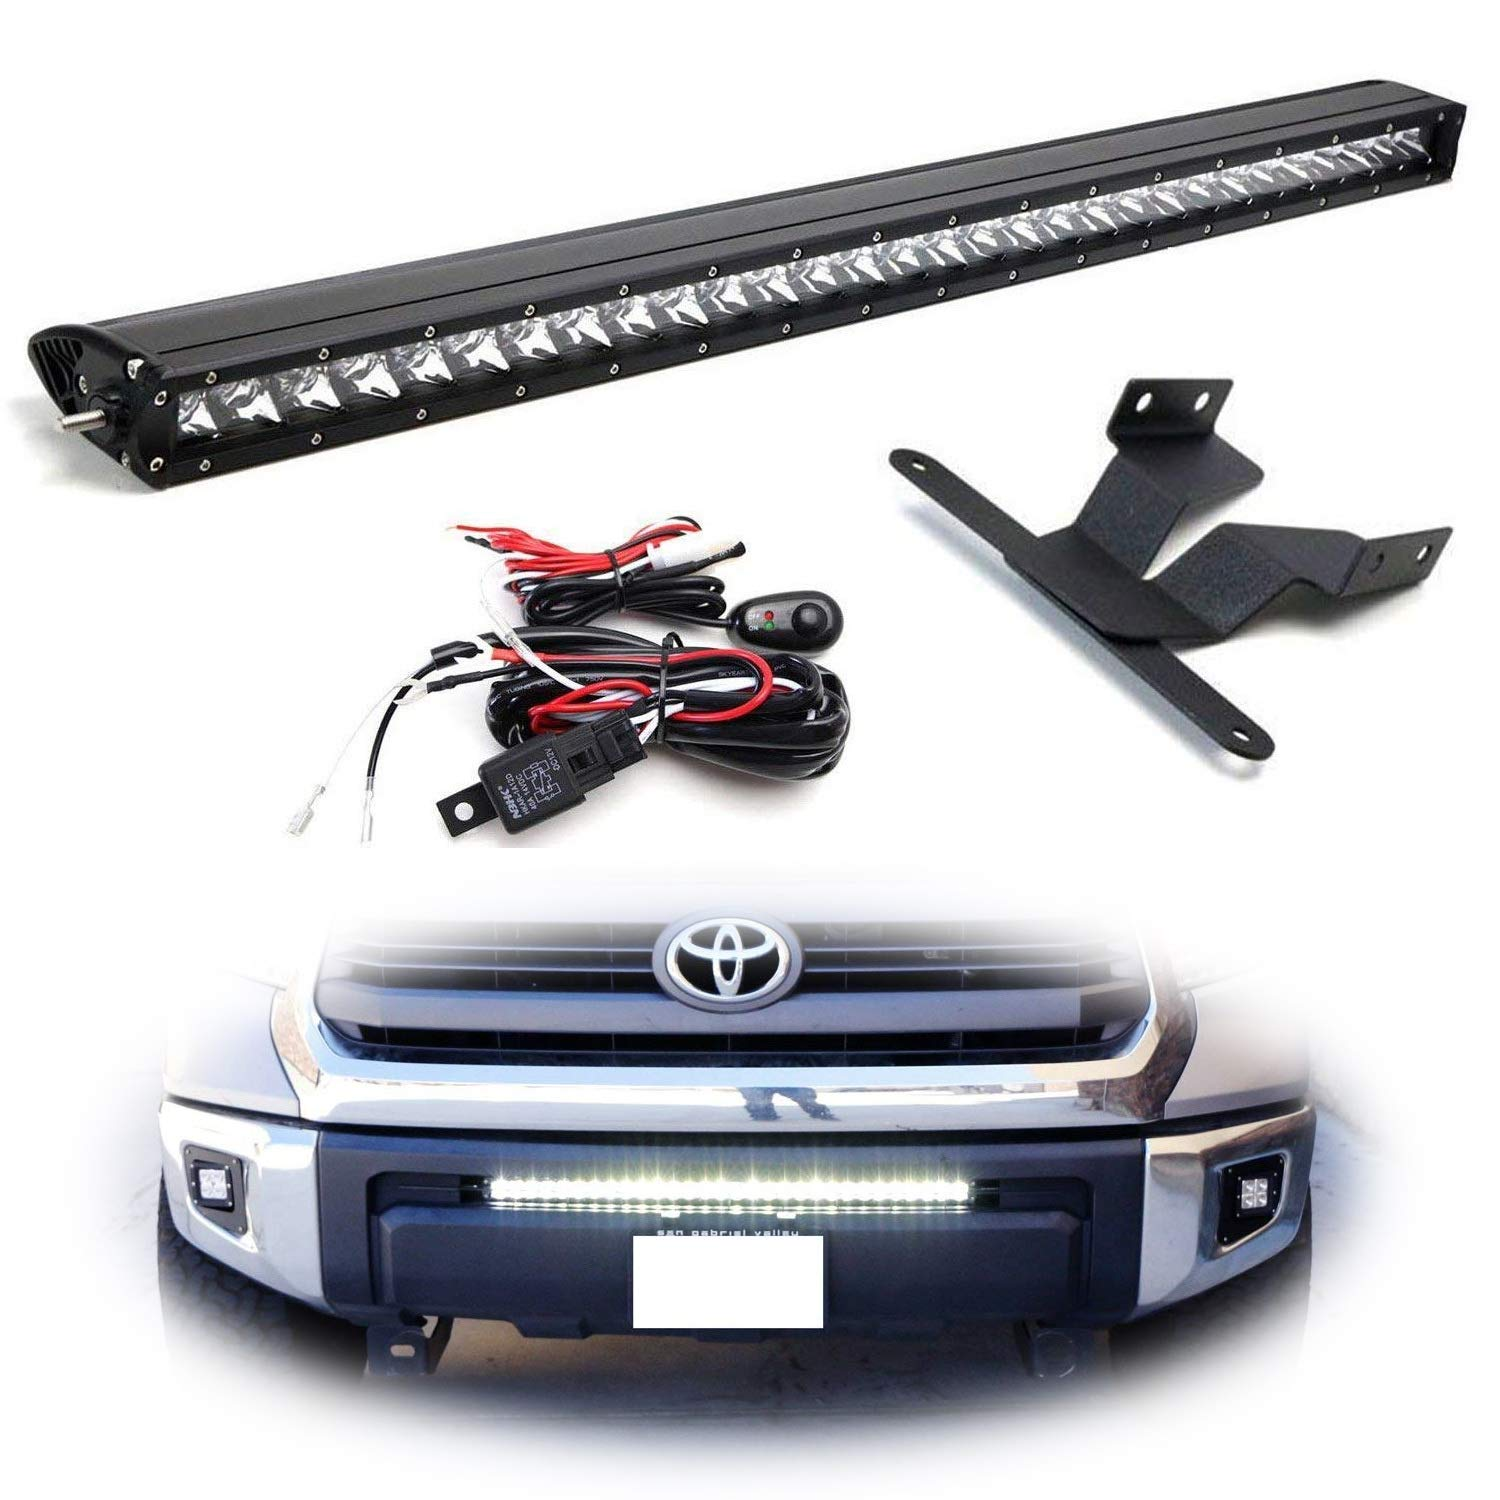 Ijdmtoy Lower Grille Mount 30 Led Light Bar Kit For 2014 Tundra Wiring Diagram Lights Up Toyota Includes 1 150w High Power Cree Lightbar Bumper Opening